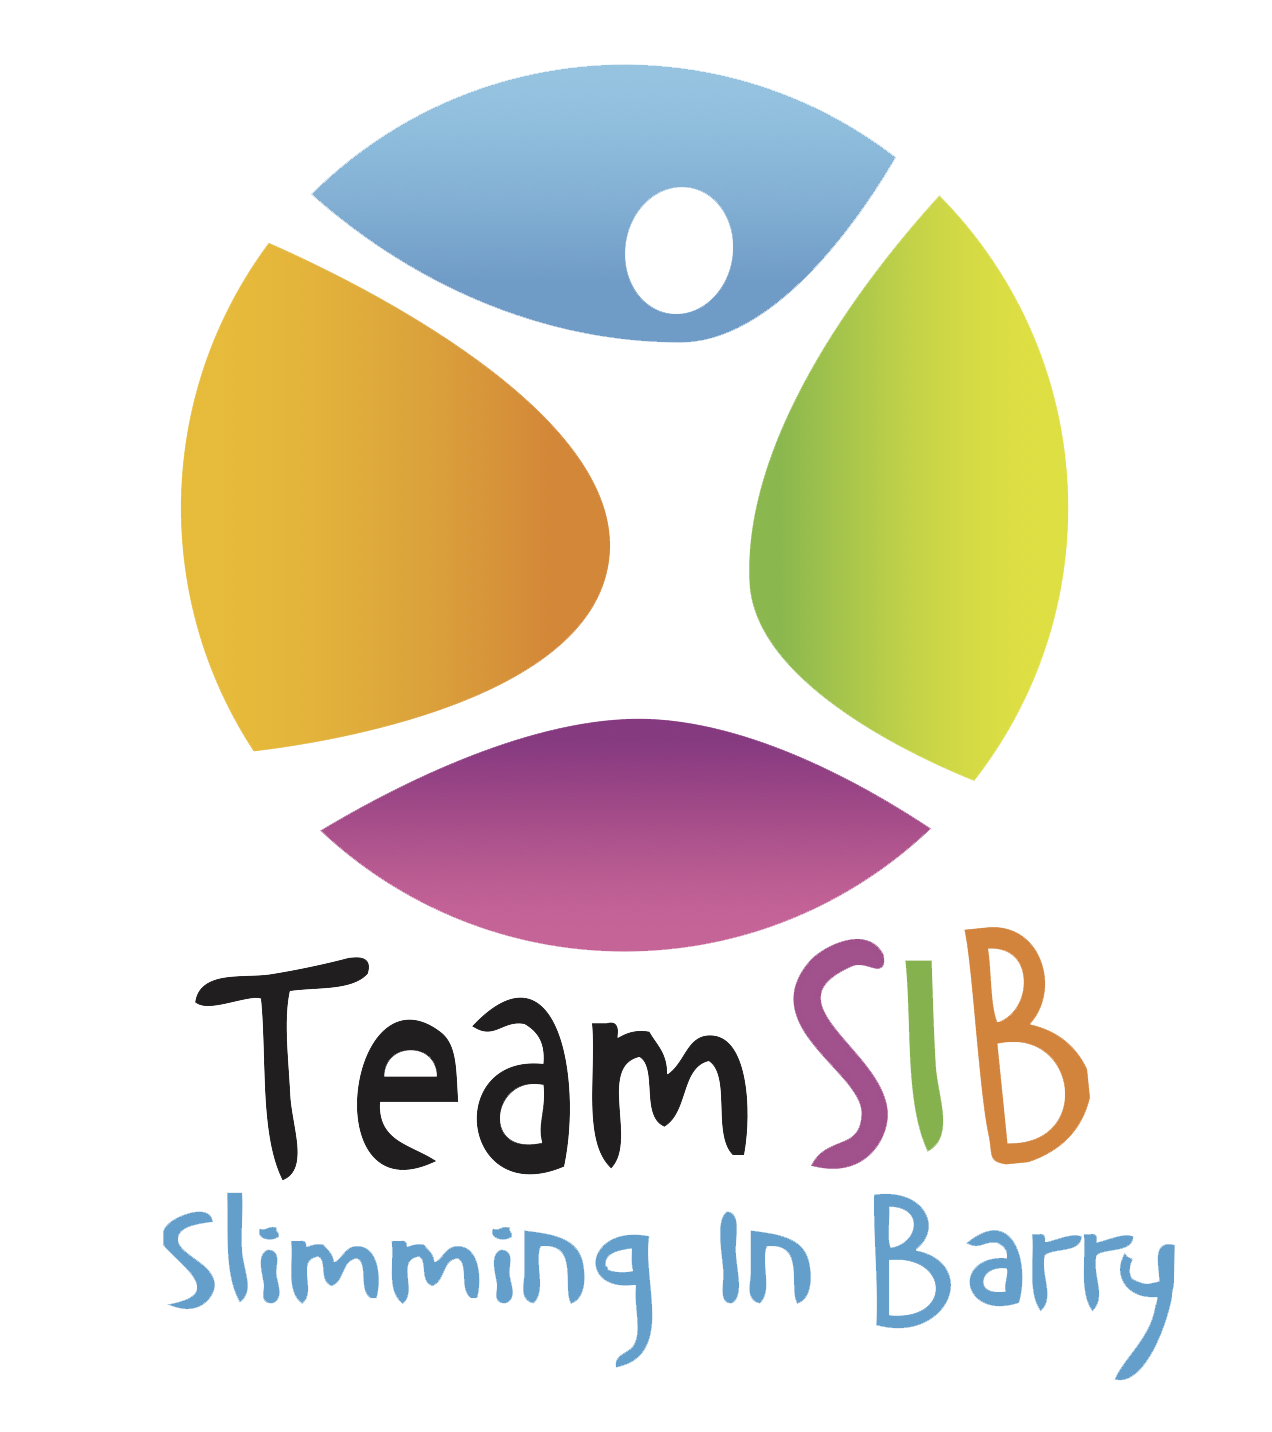 slimming barry